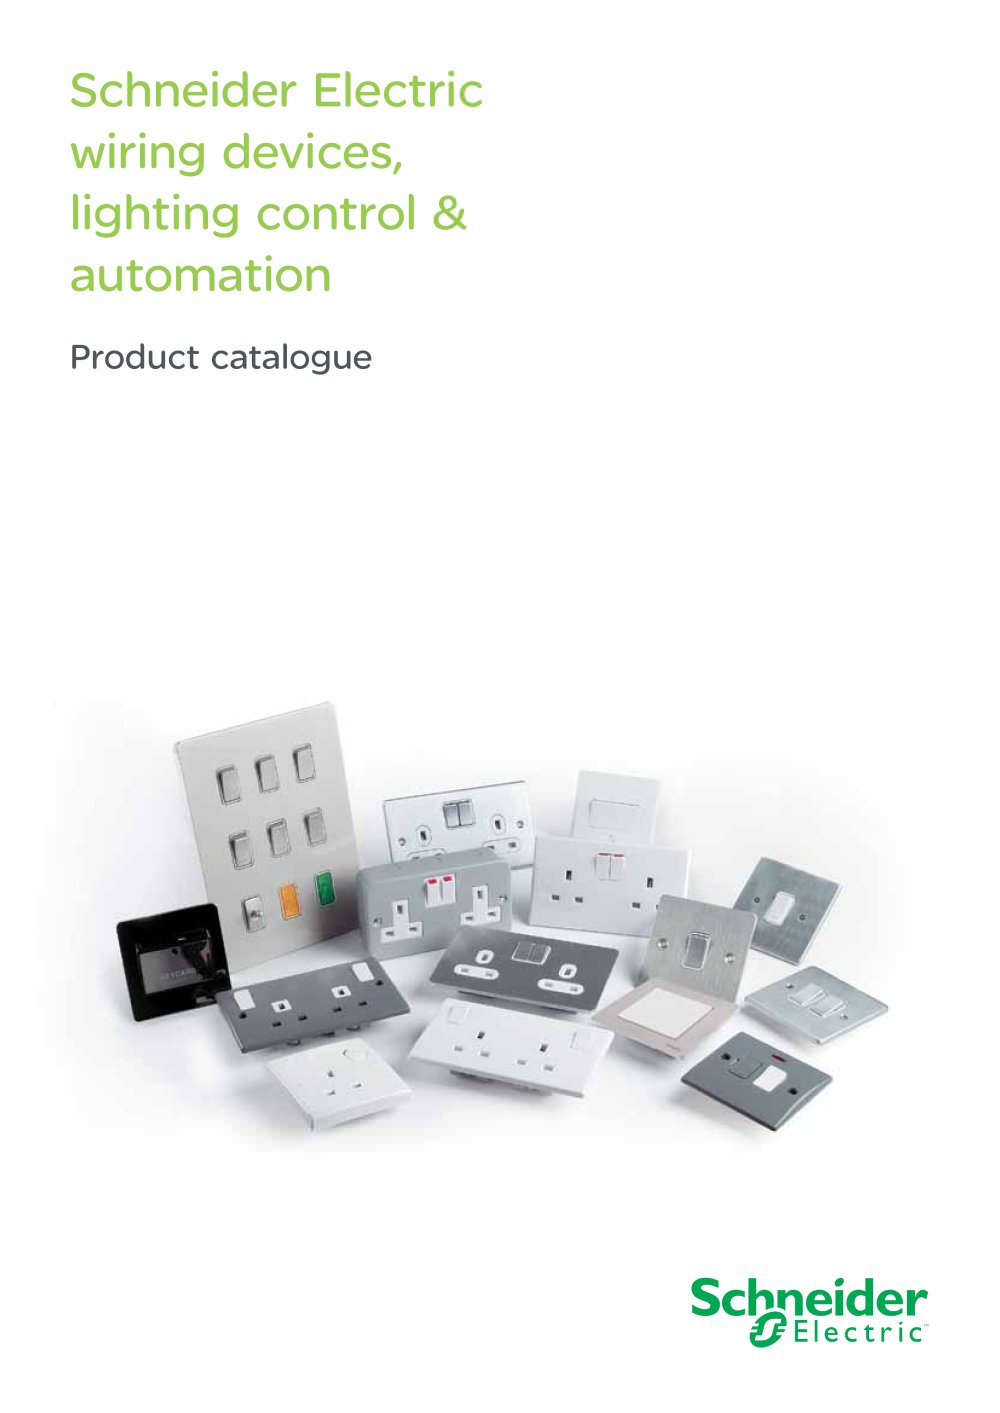 schneider electric wiring devices lighting control automation rh pdf archiexpo com Schneider Electric Catalog Schneider Electric Wallpaper